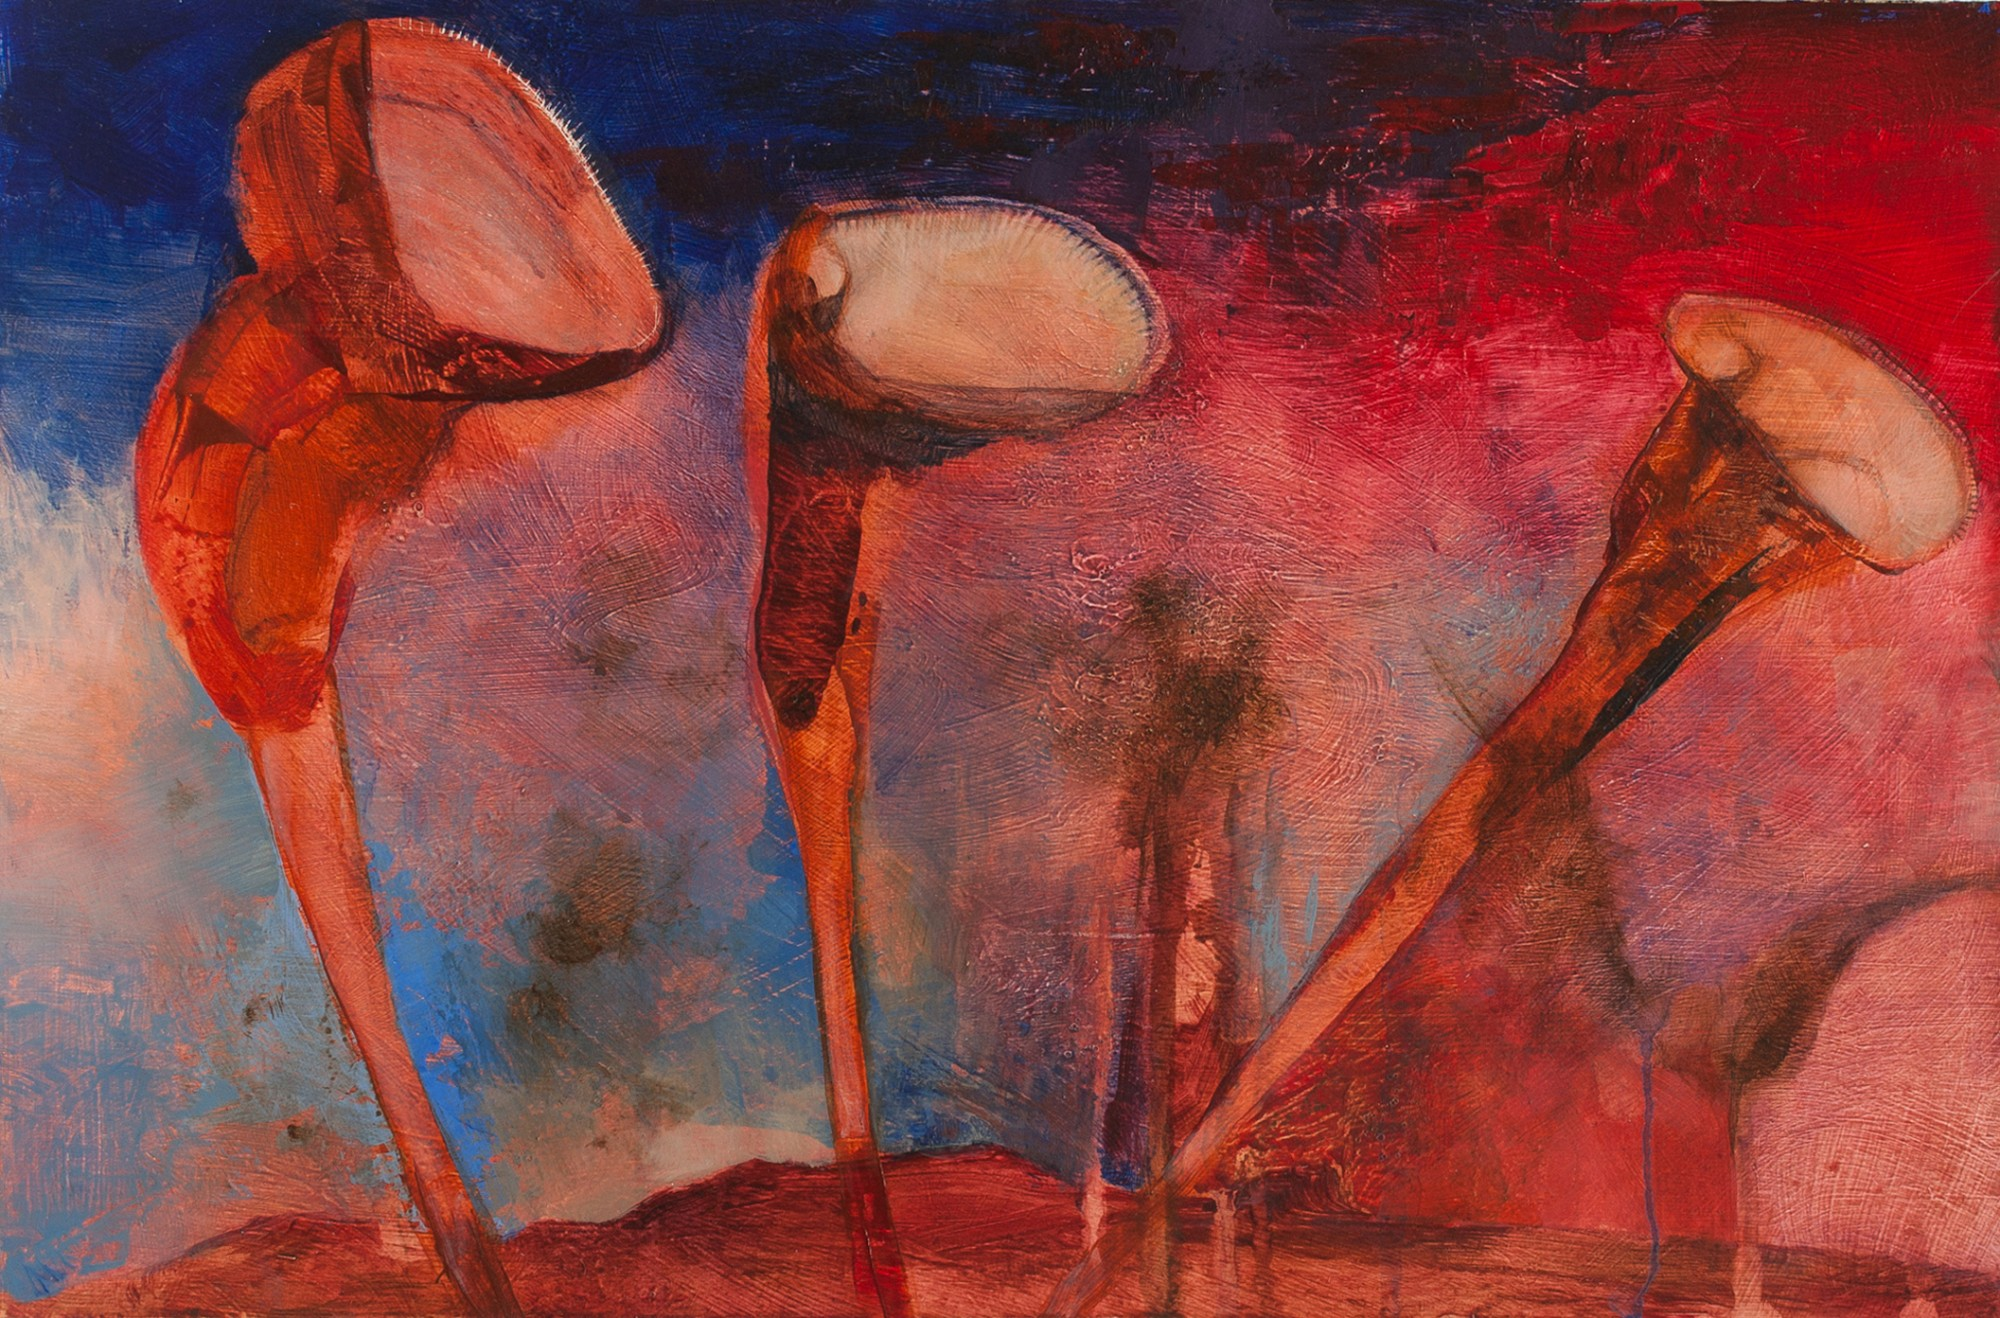 Ellen Hausner Painter Oxford Another World (acrylic on board), 2013